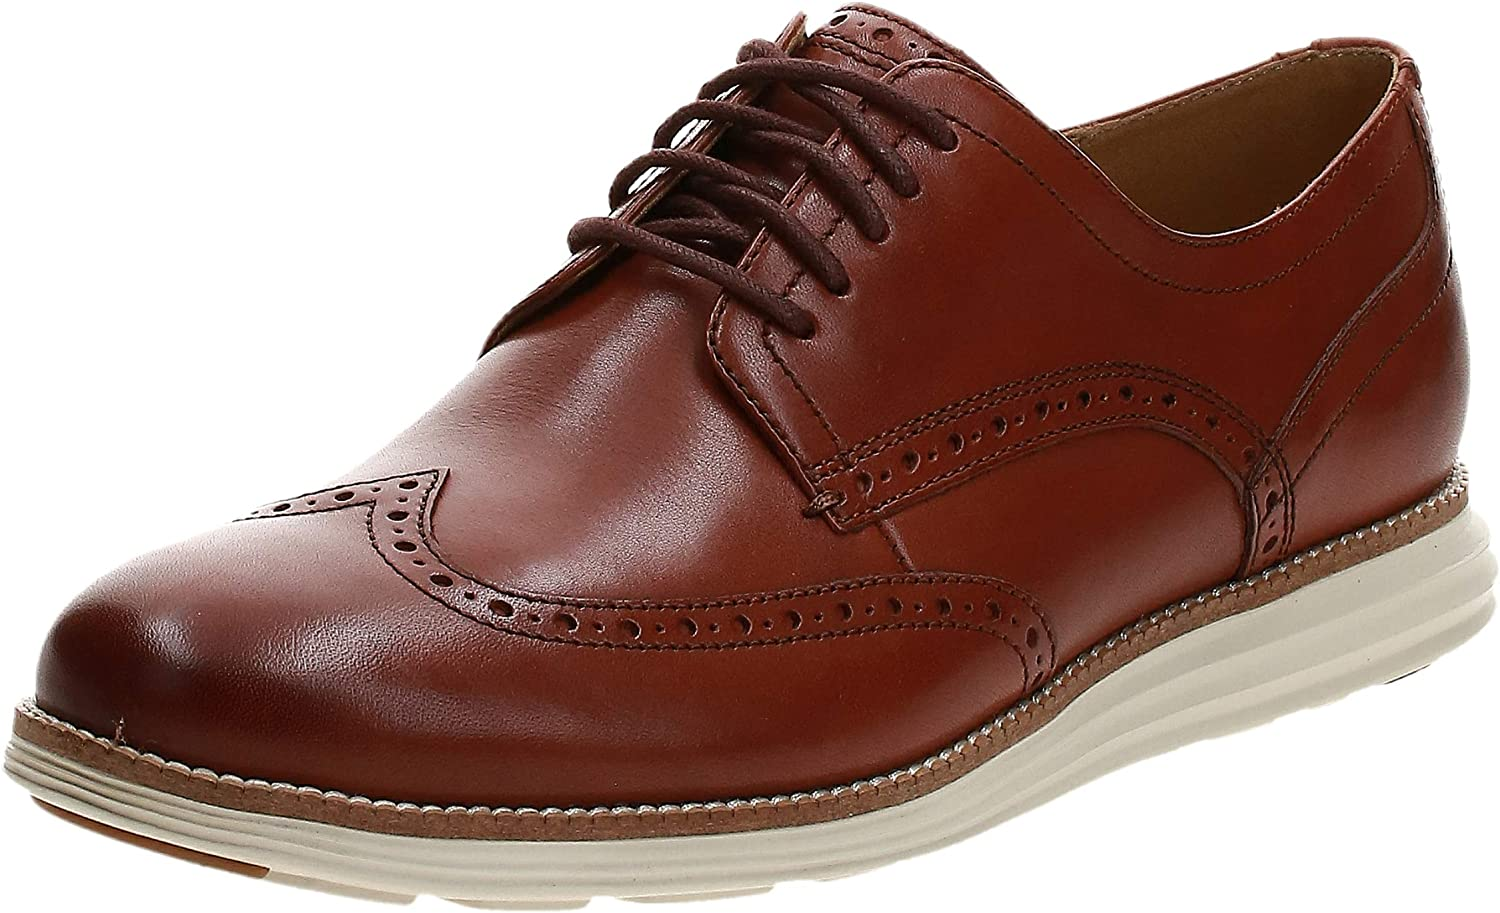 Cole Haan Men's Some reservation Original Shortwing Shoe Grand Special sale item Oxford